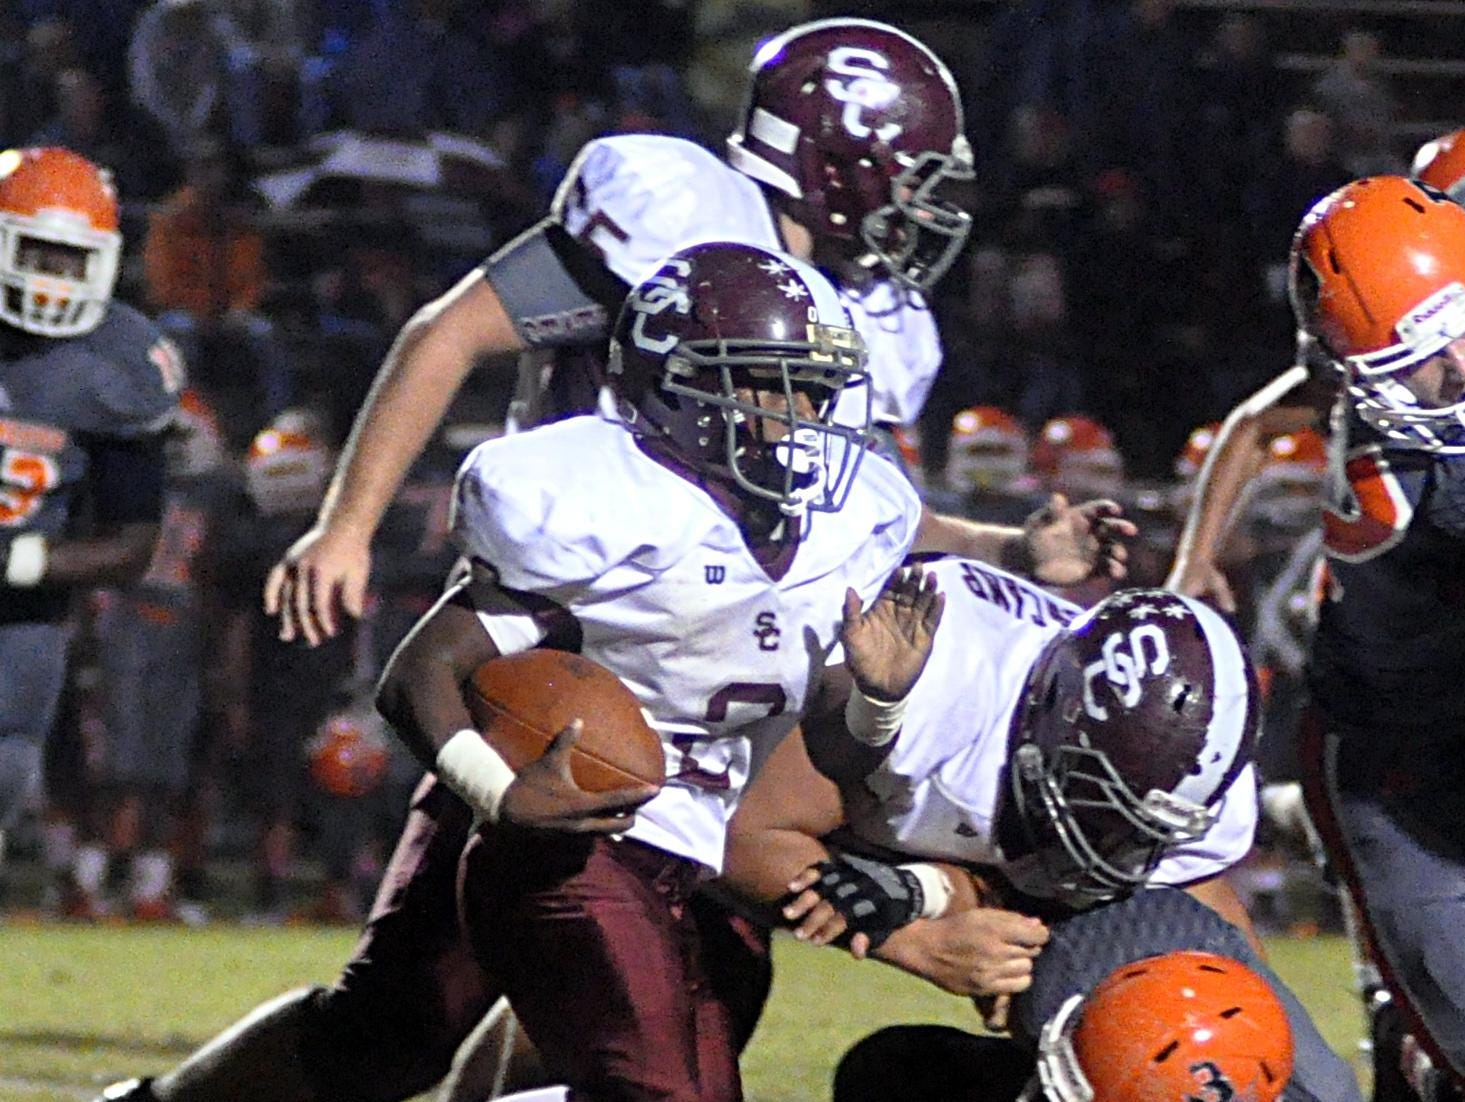 Station Camp High sophomore Kaemon Dunlap carries the ball during second-quarter action.